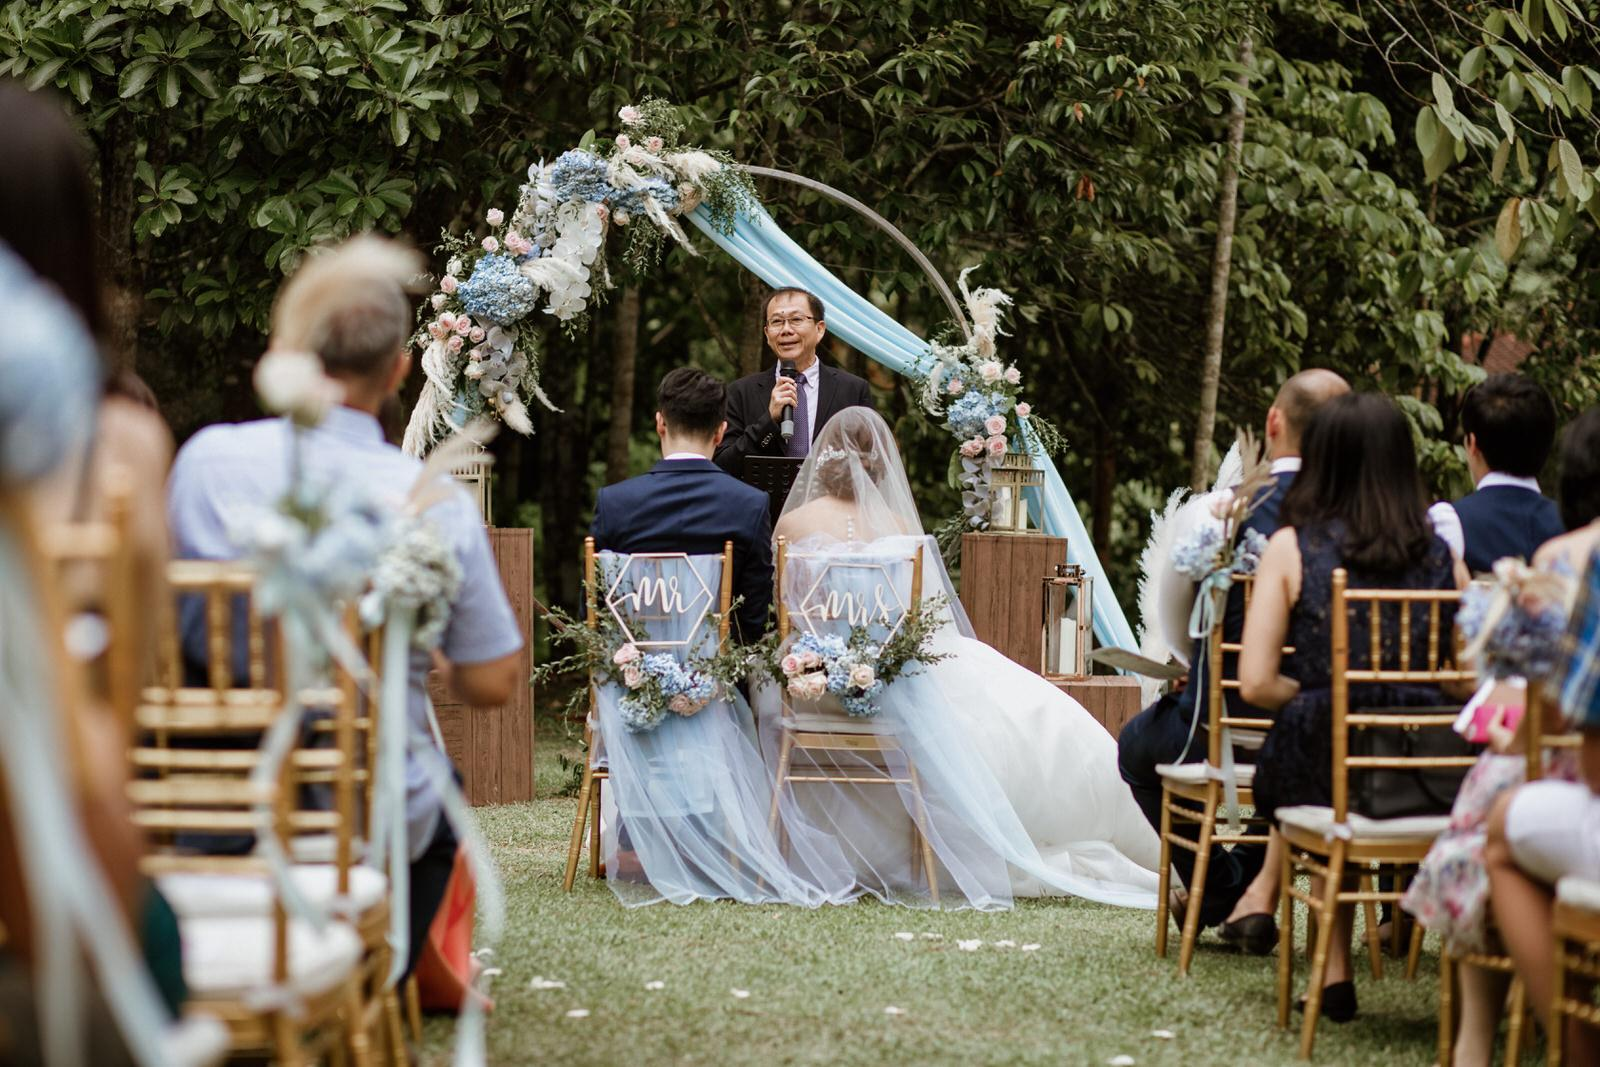 Rings Exchange Ceremony Tanarimba Rustic Garden Weding Janda baik Decoration Photobooth Cliff Choong Photography